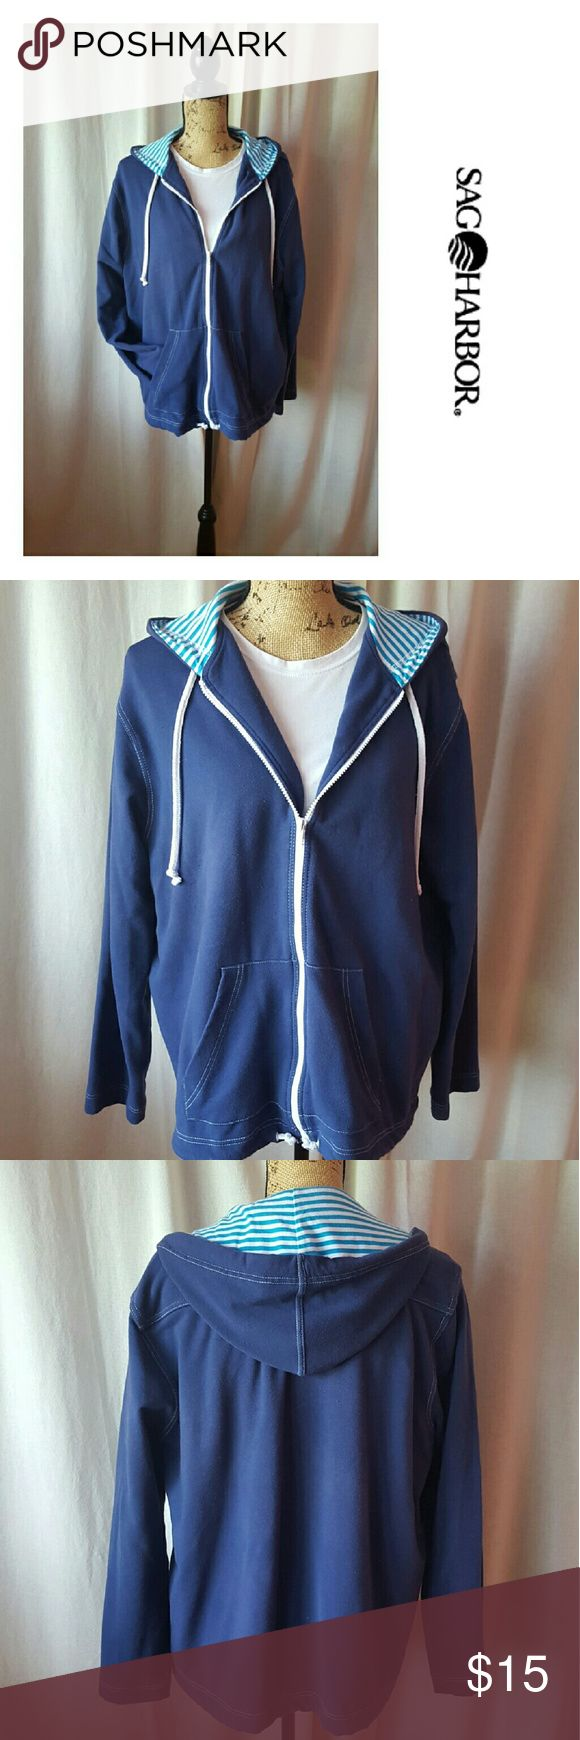 Sag Harbor Sport zip up hoodie Sag Harbor Sport Blue zip up hoodie with Blue and white stripes on the inside of the hood. Drawstring at bottom and hood. Very soft and comfortable! Sag Harbor Tops Sweatshirts & Hoodies